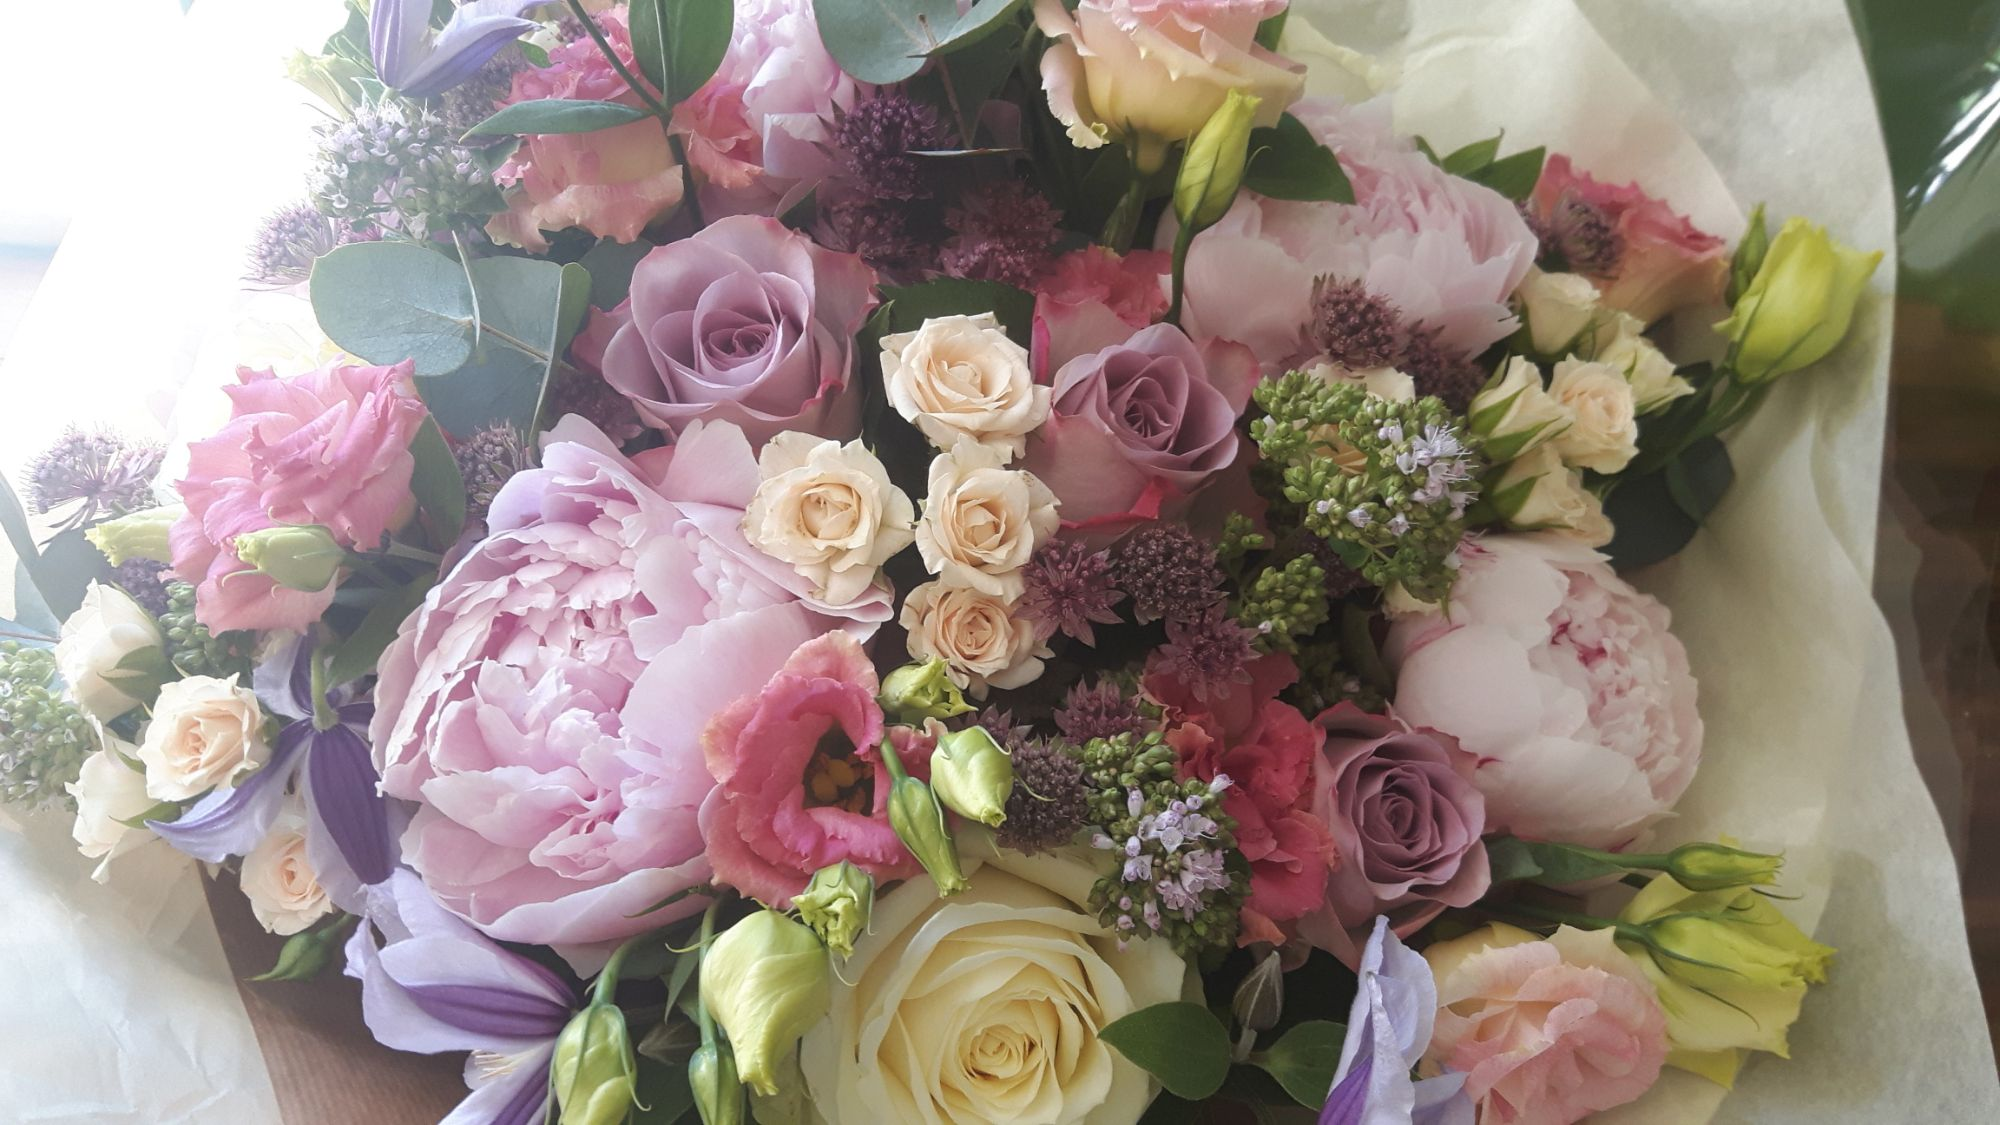 send flowers to Hurstpierpoint